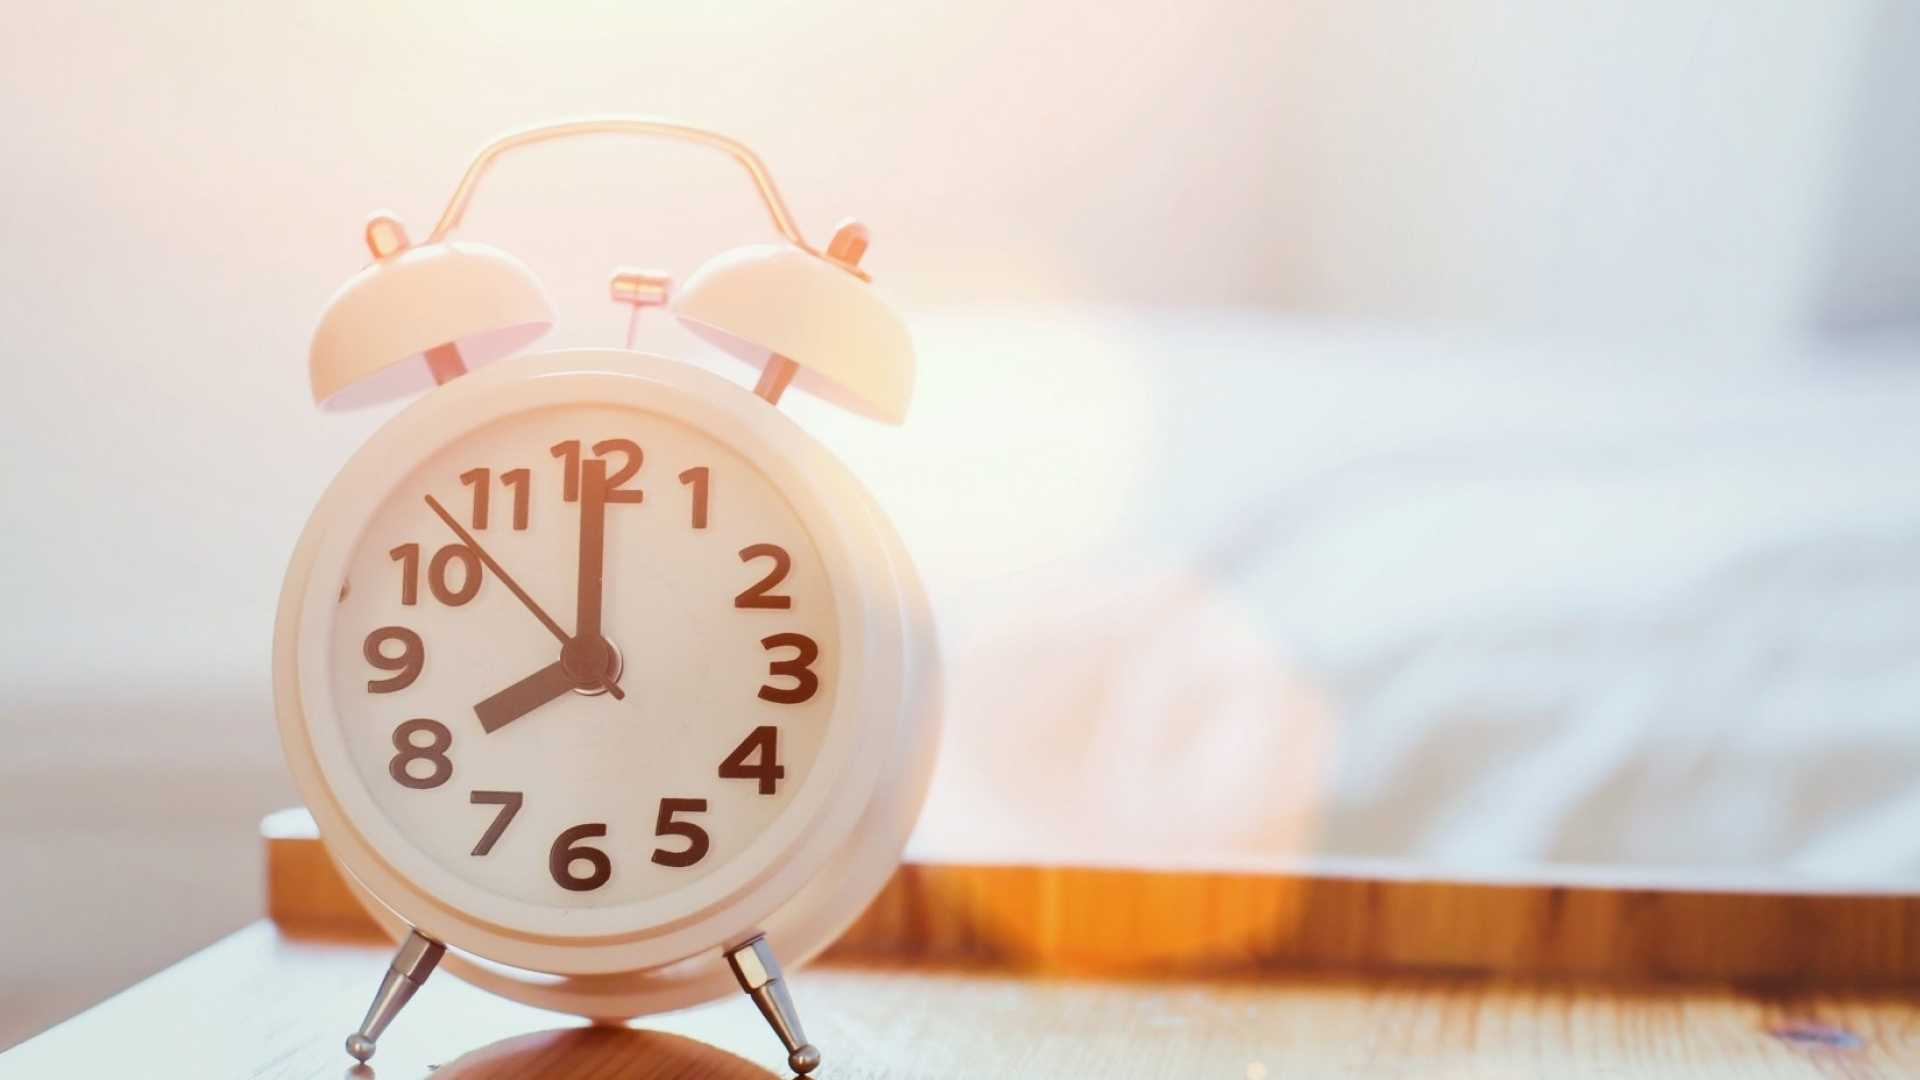 4 Things to Add to Your Morning Routine to Boost Productivity